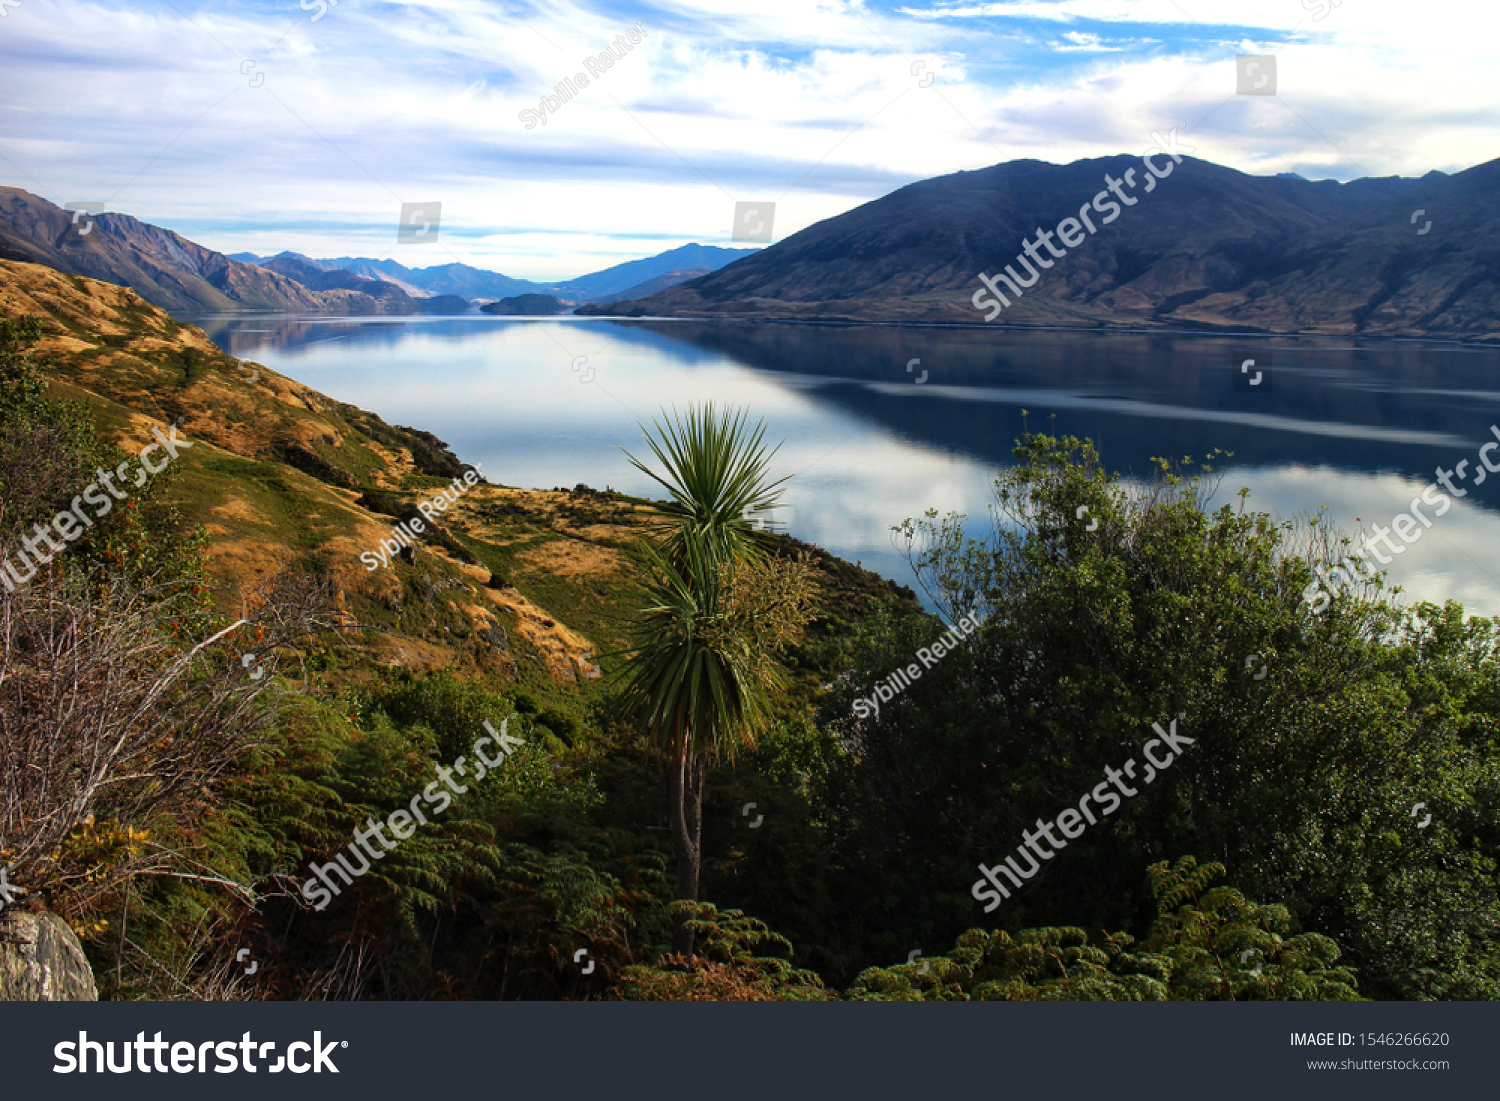 stock-photo-tranquil-landscape-with-lush